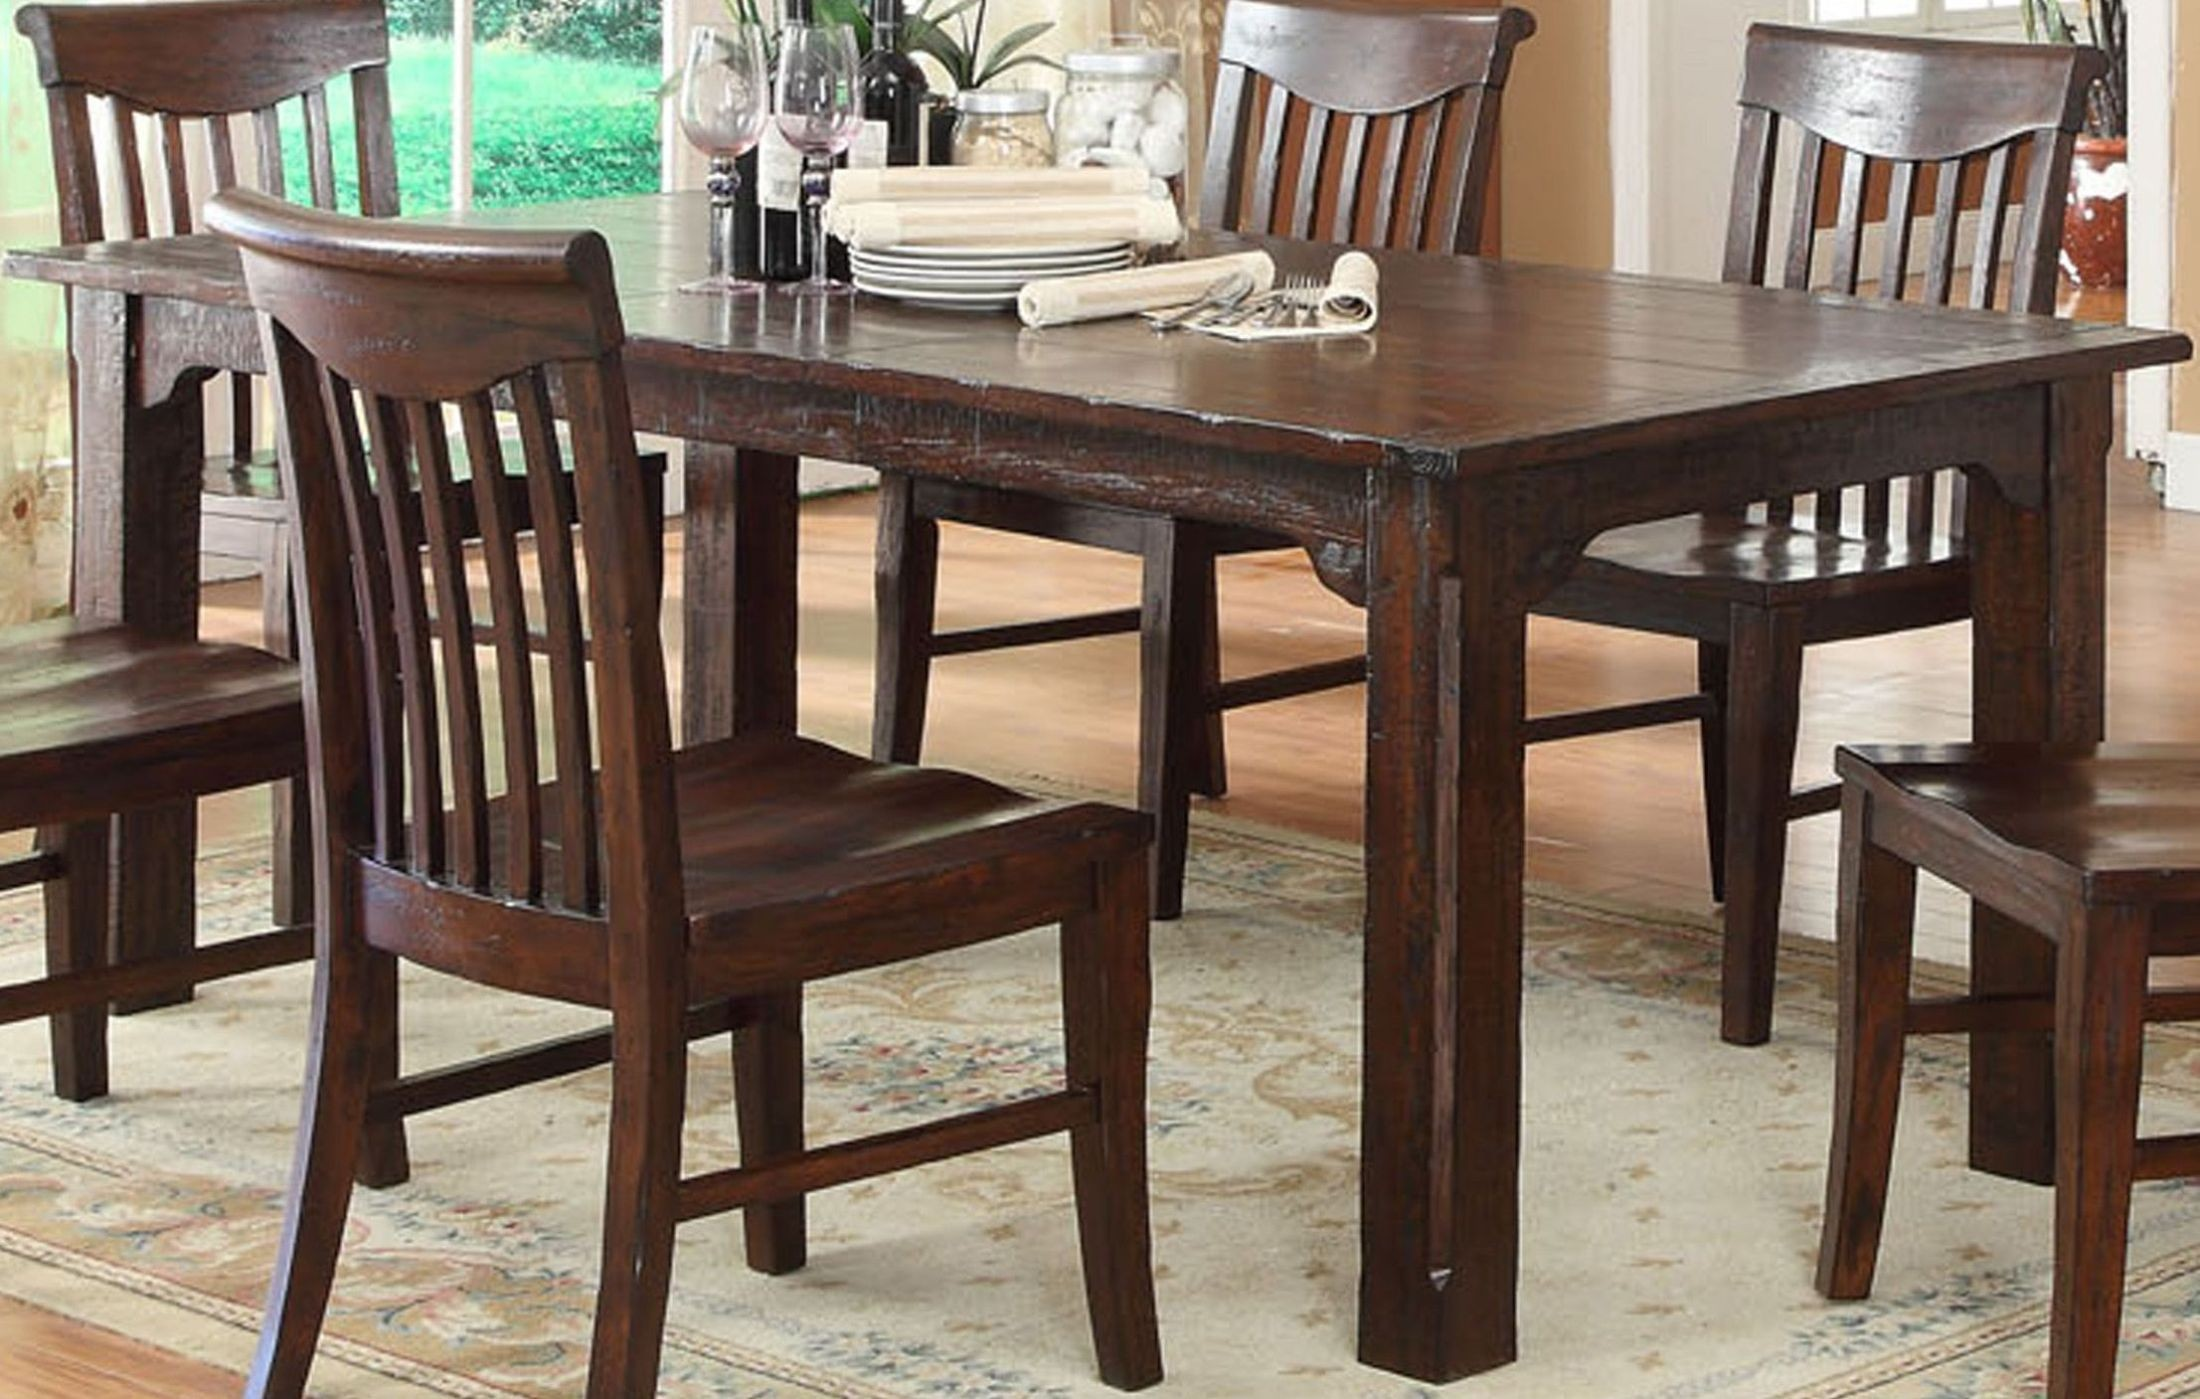 Distressed White Oak Dining Chairs: Gettysburg Distressed Dark Oak Leg Dining Table From ECI